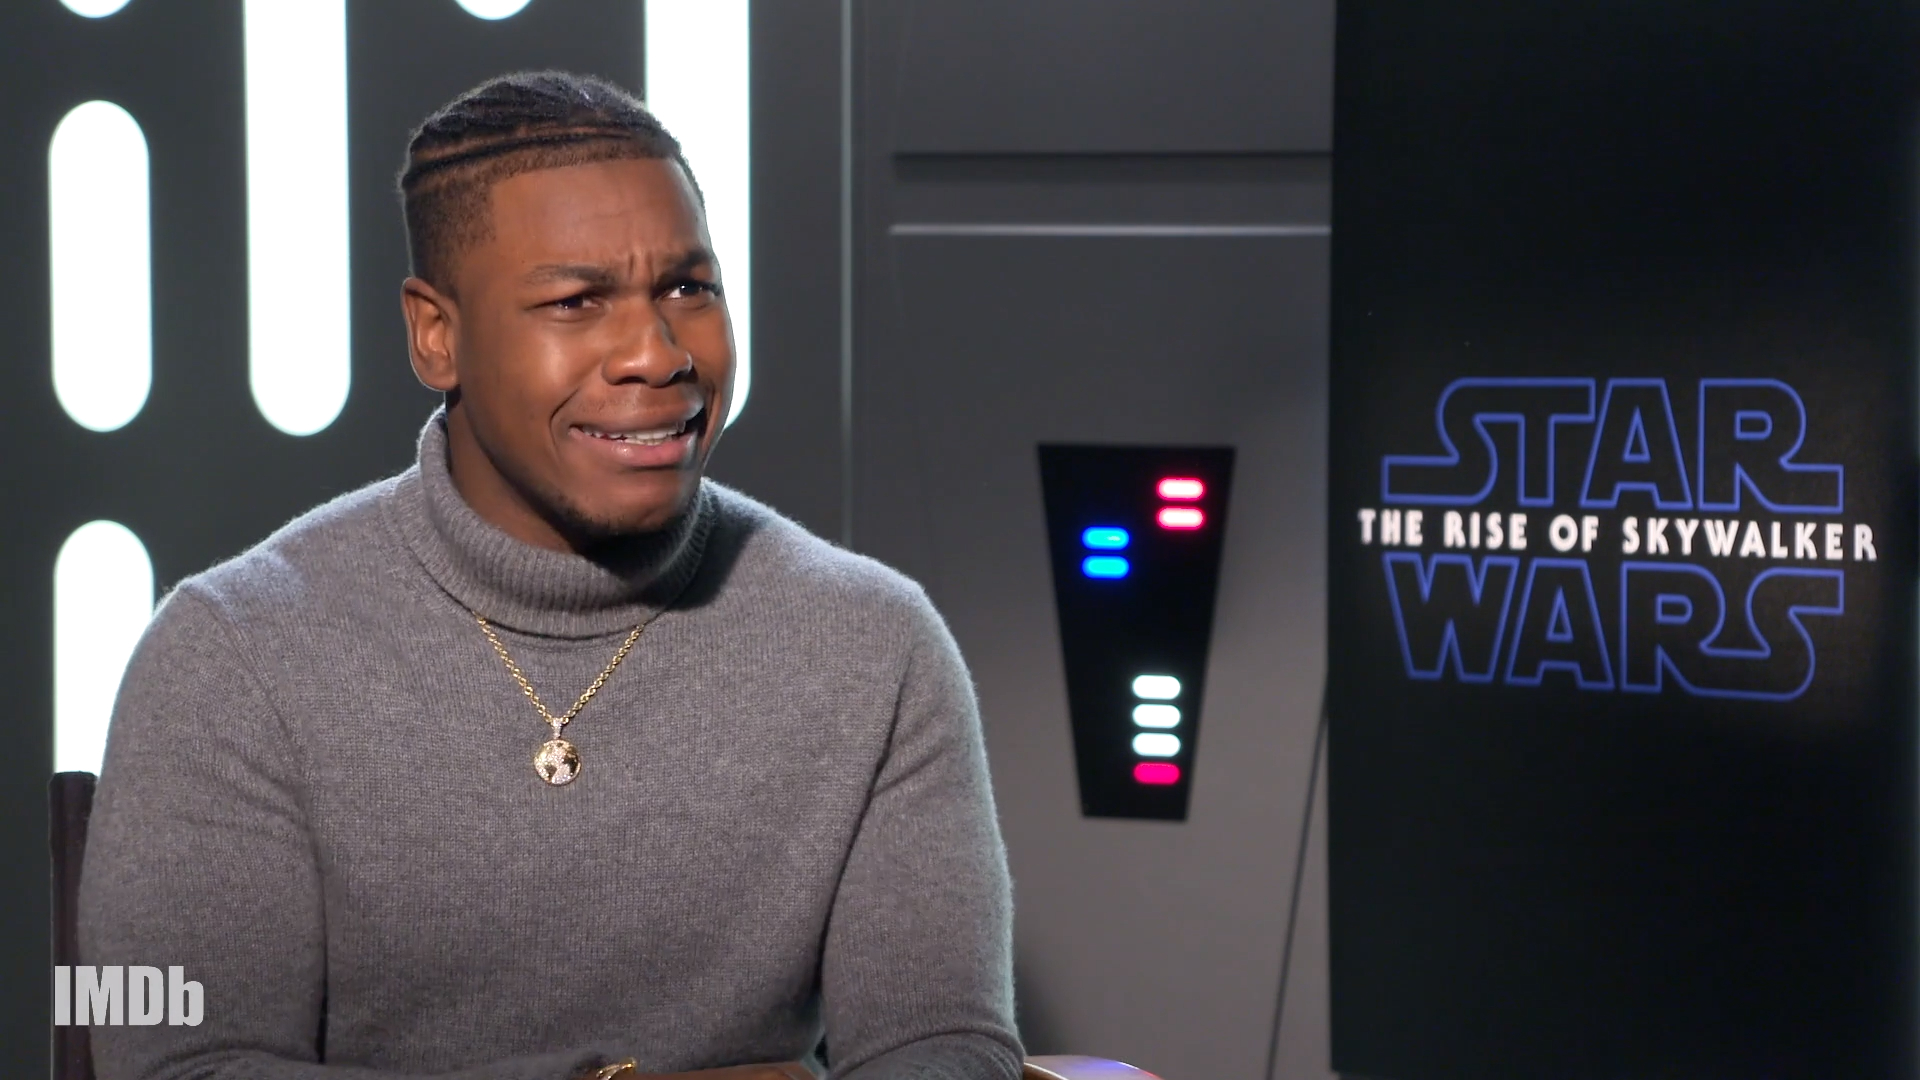 Star Wars Cast Reveal Their Biggest Rise Of Skywalker Challenges